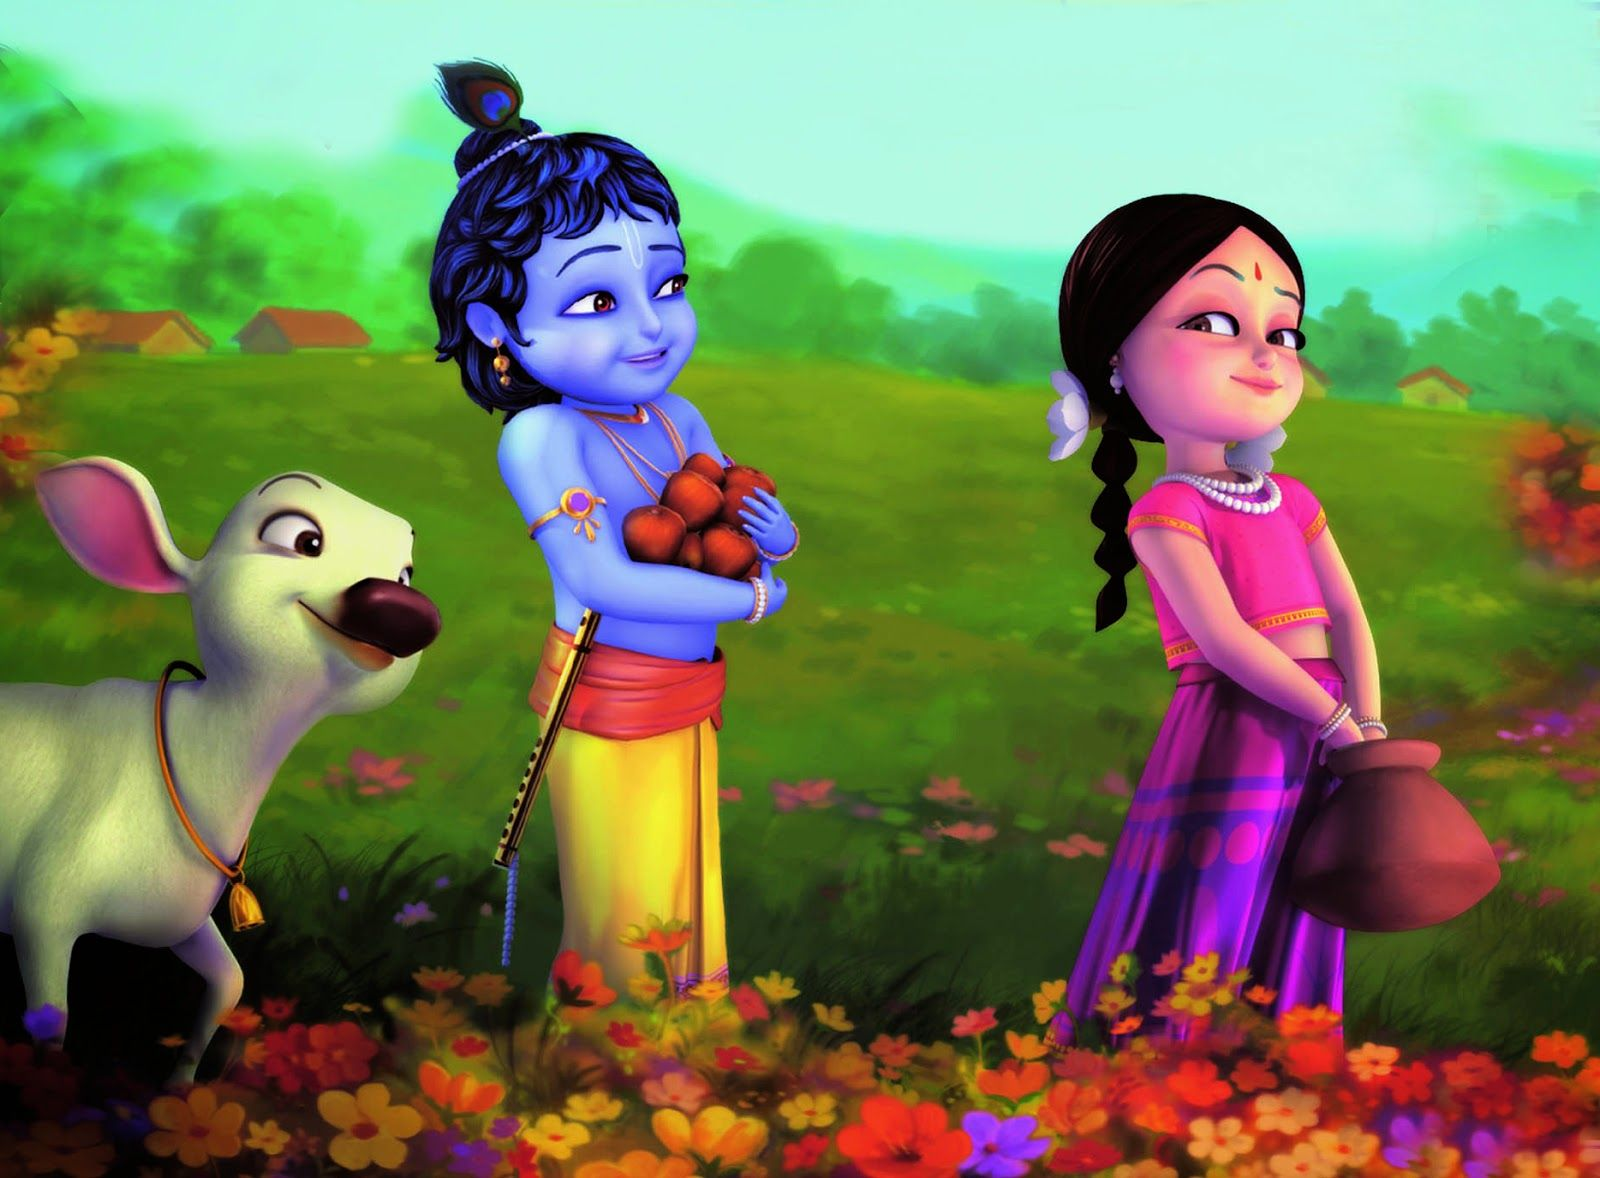 Hd wallpaper krishna - Disney Hd Wallpapers Disney Cartoon Little Krishna